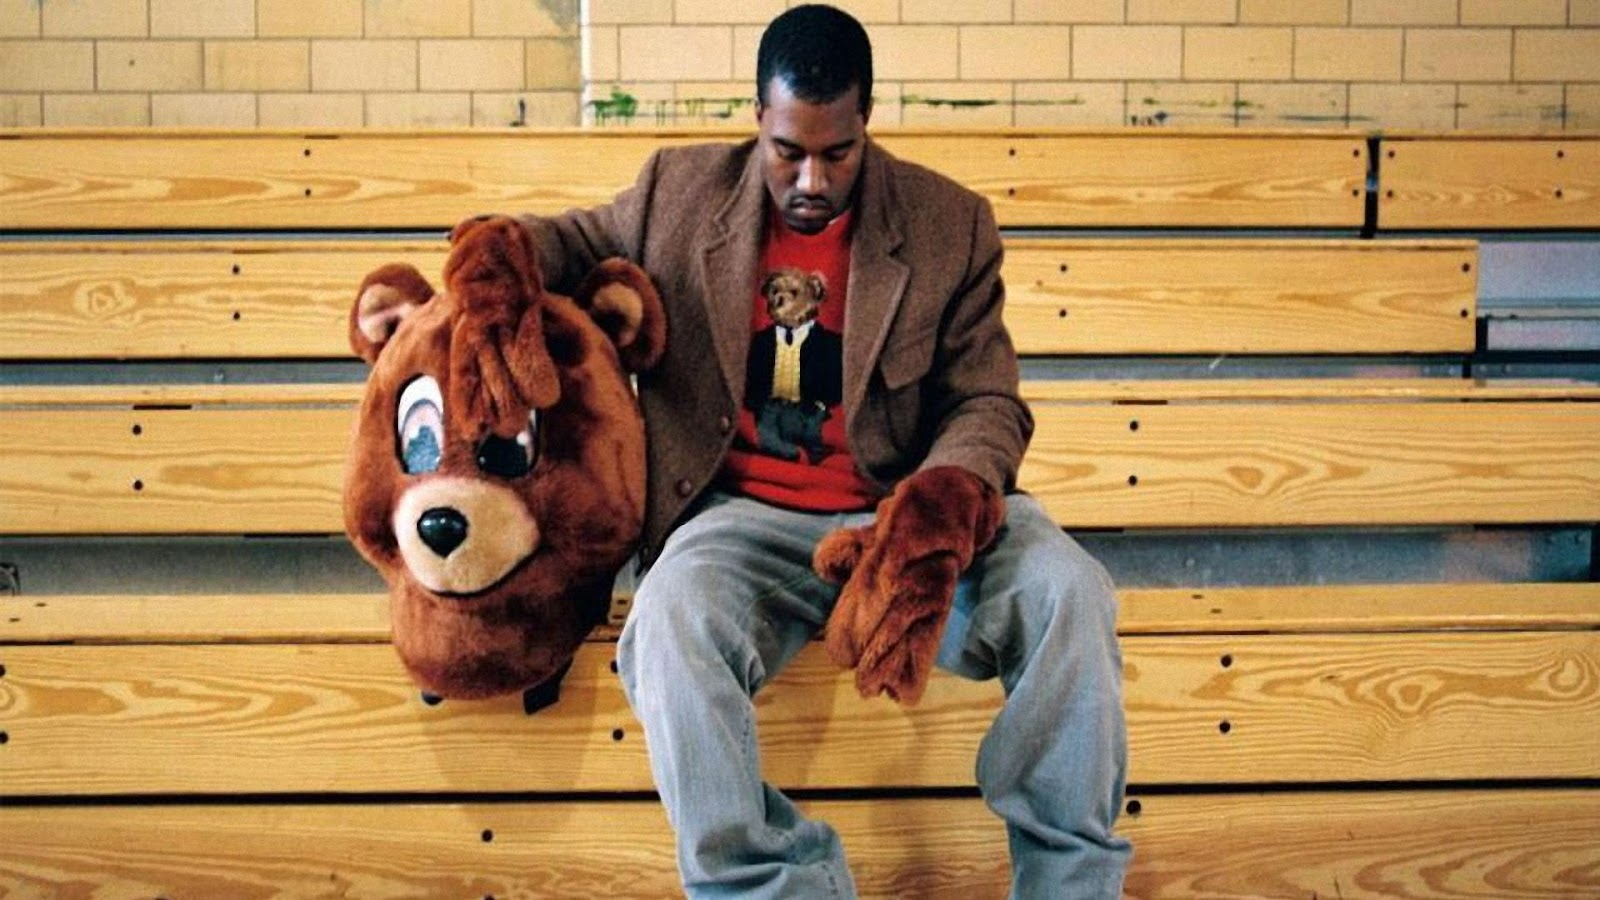 Facebook Wallpaper Hd Quotes Kanye West Wallpapers 1920x1080 10 Wallpapers Download